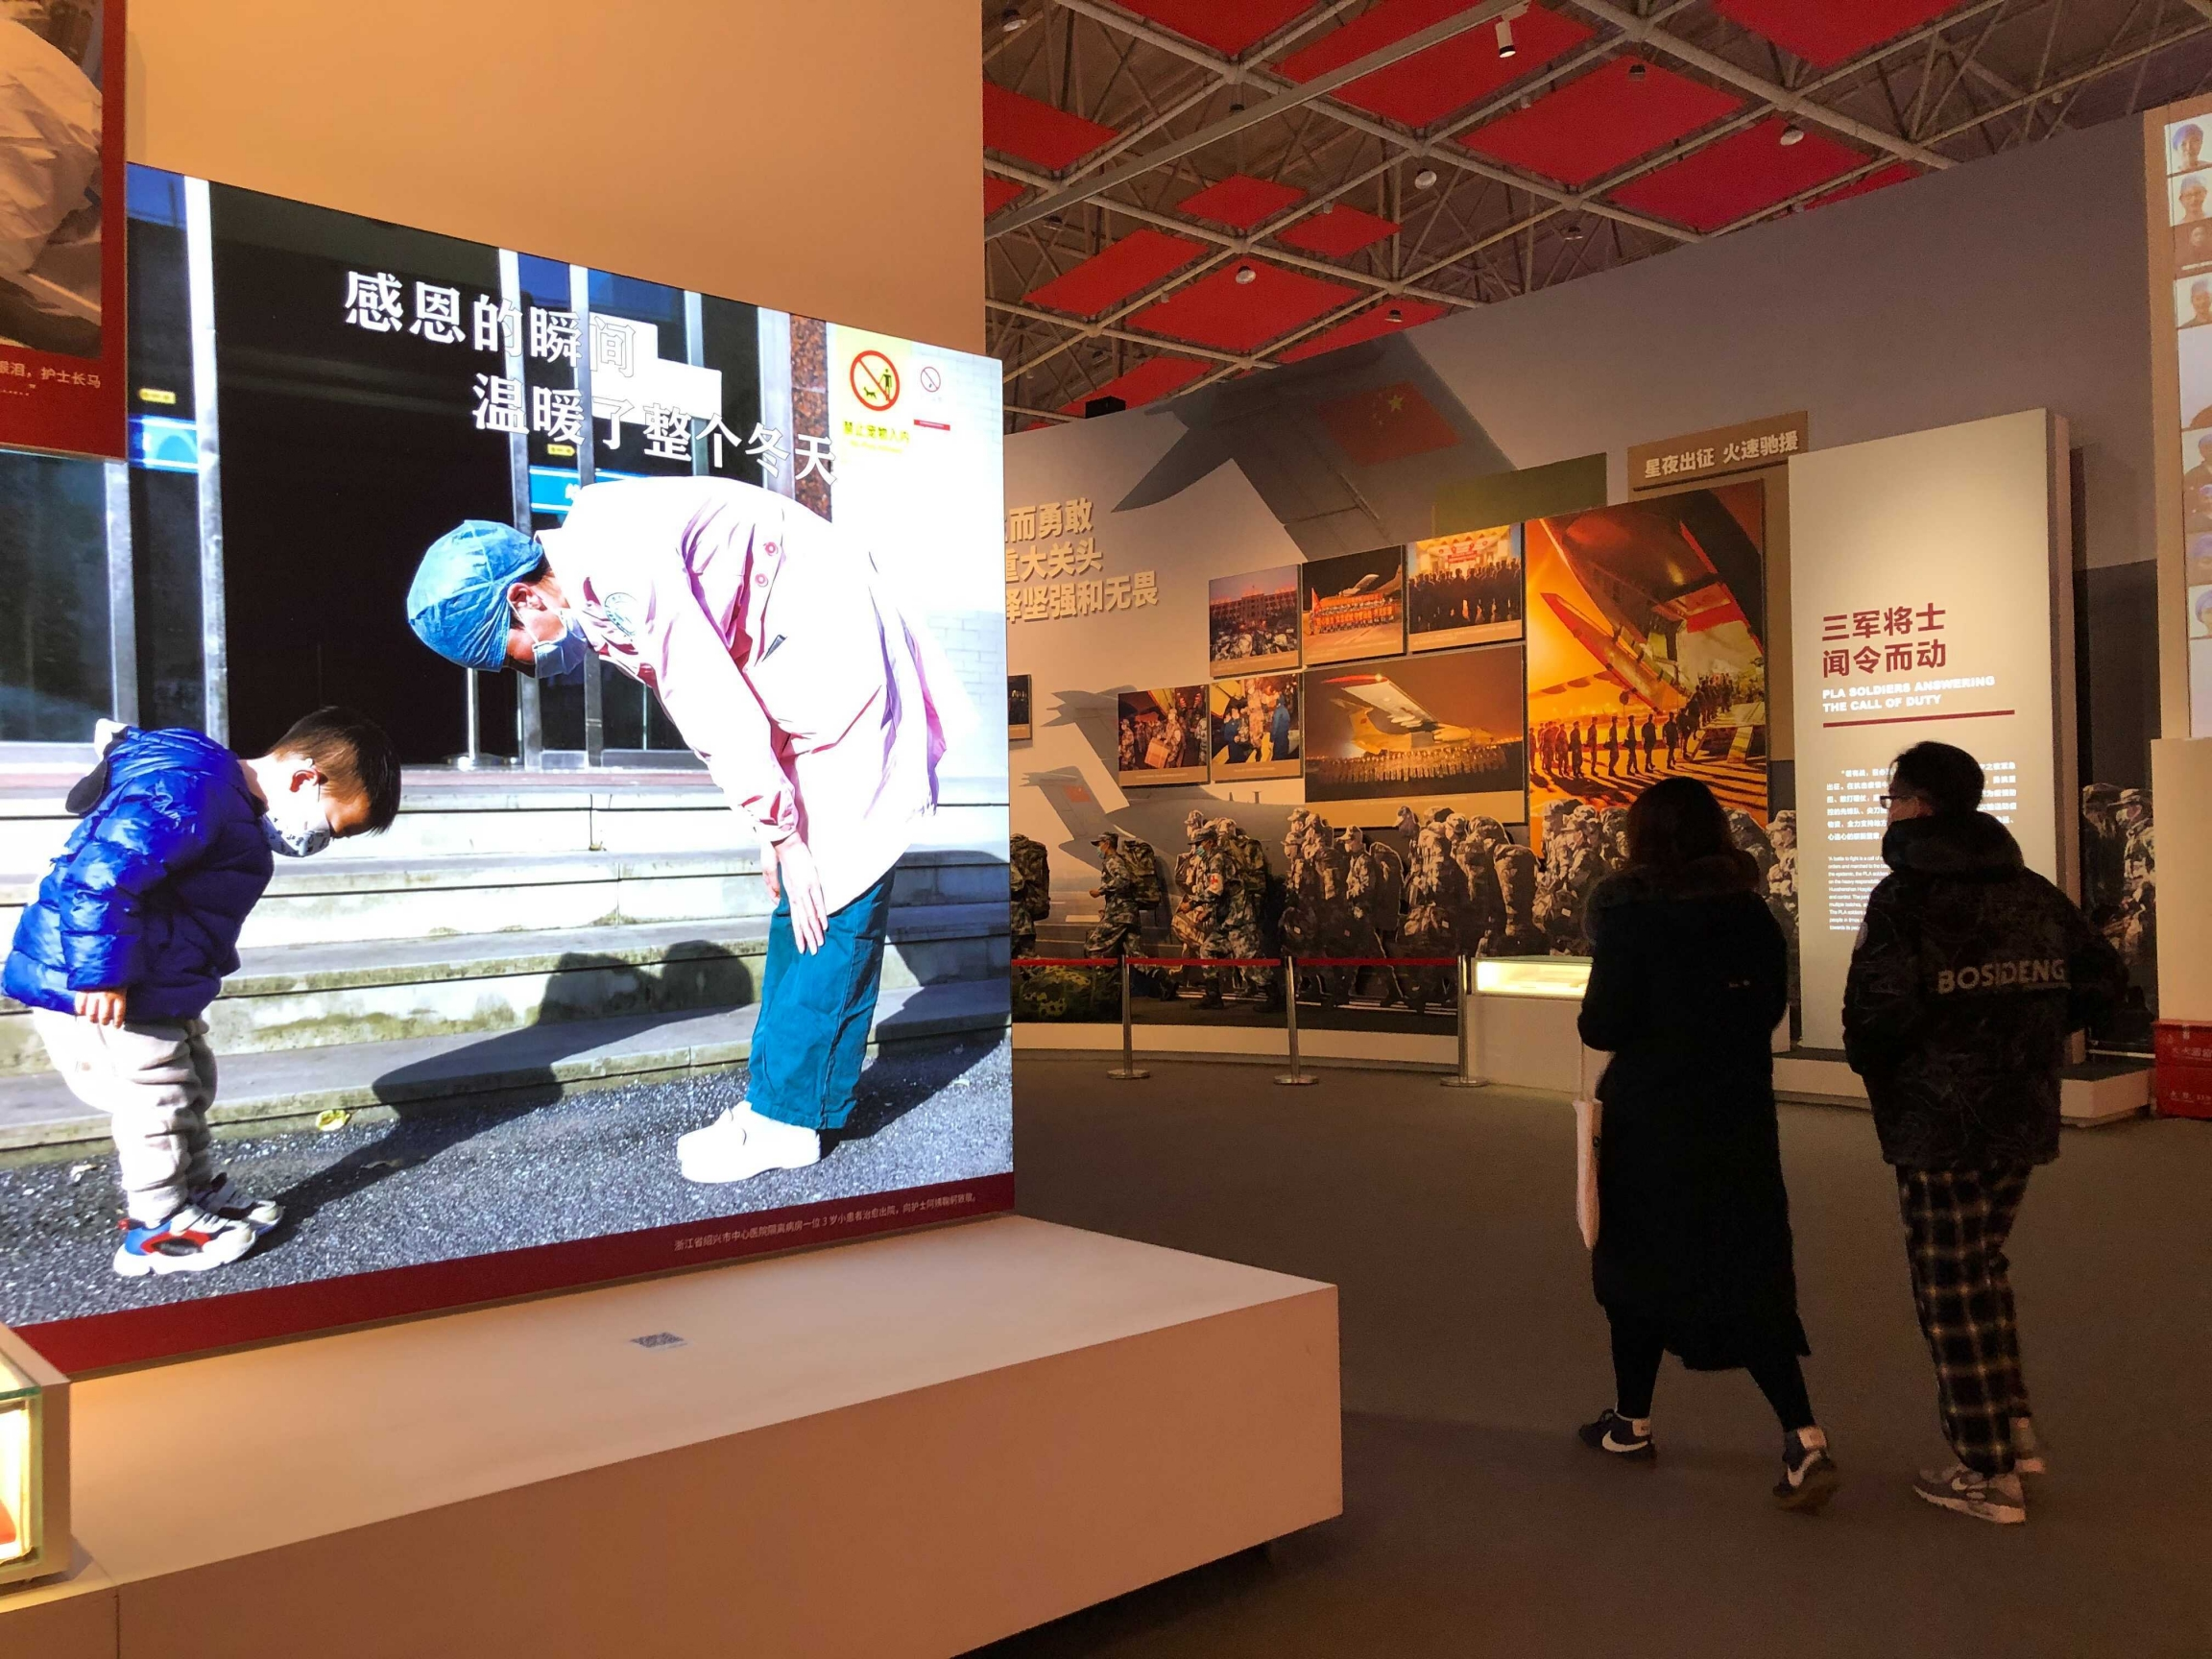 Visitors at the COVID-19 Exhibition in Wuhan, China, get a closer look at photos on display.